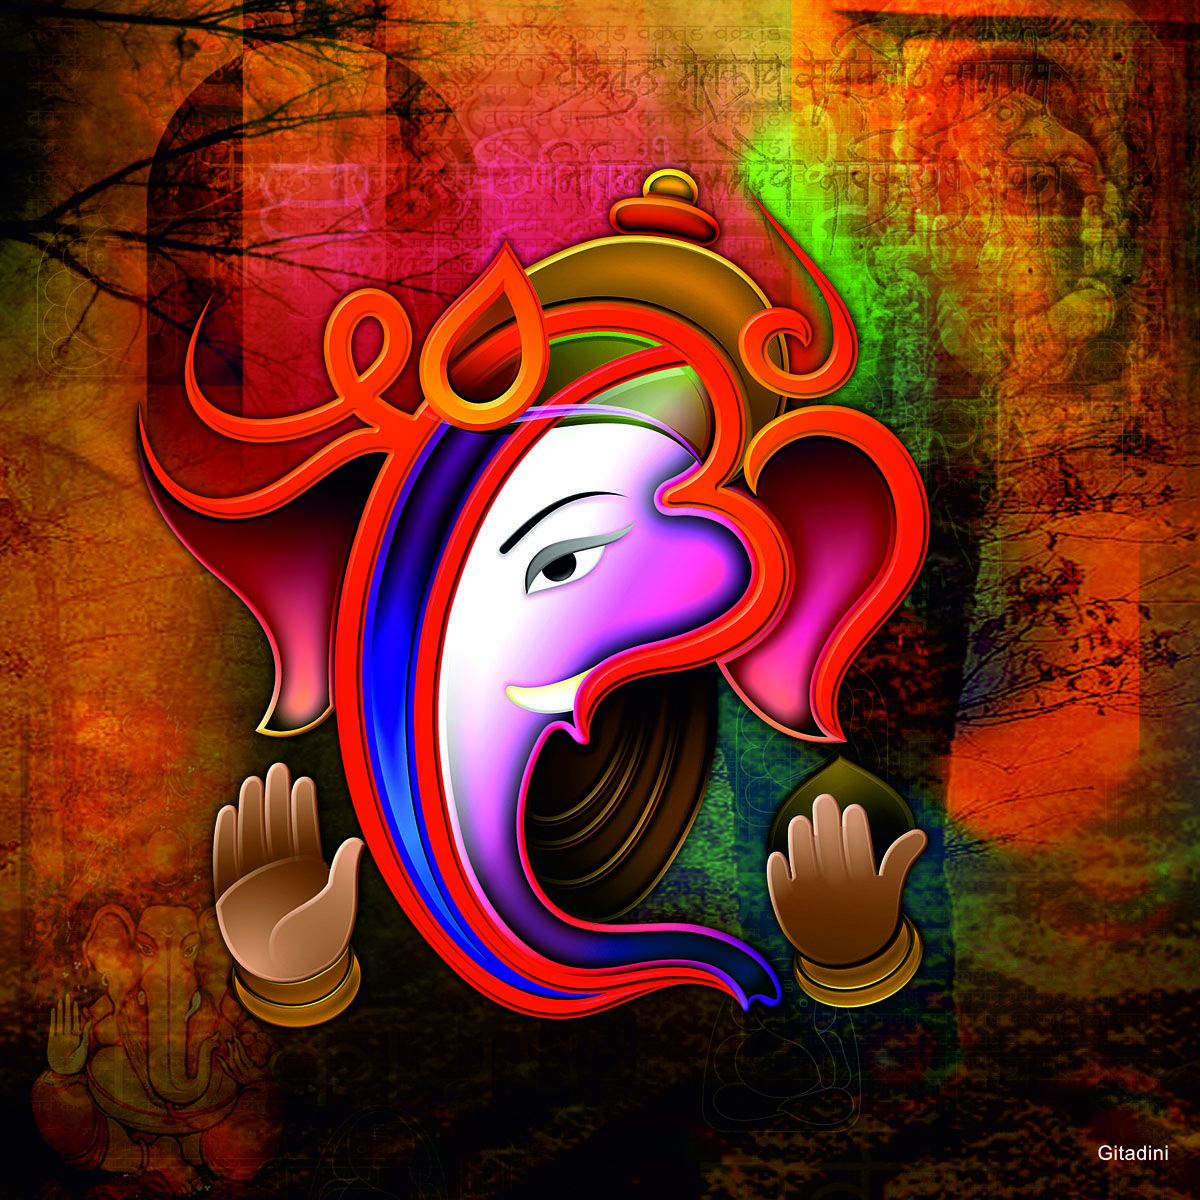 This beautiful image has been inspired by Lord Ganesha ...